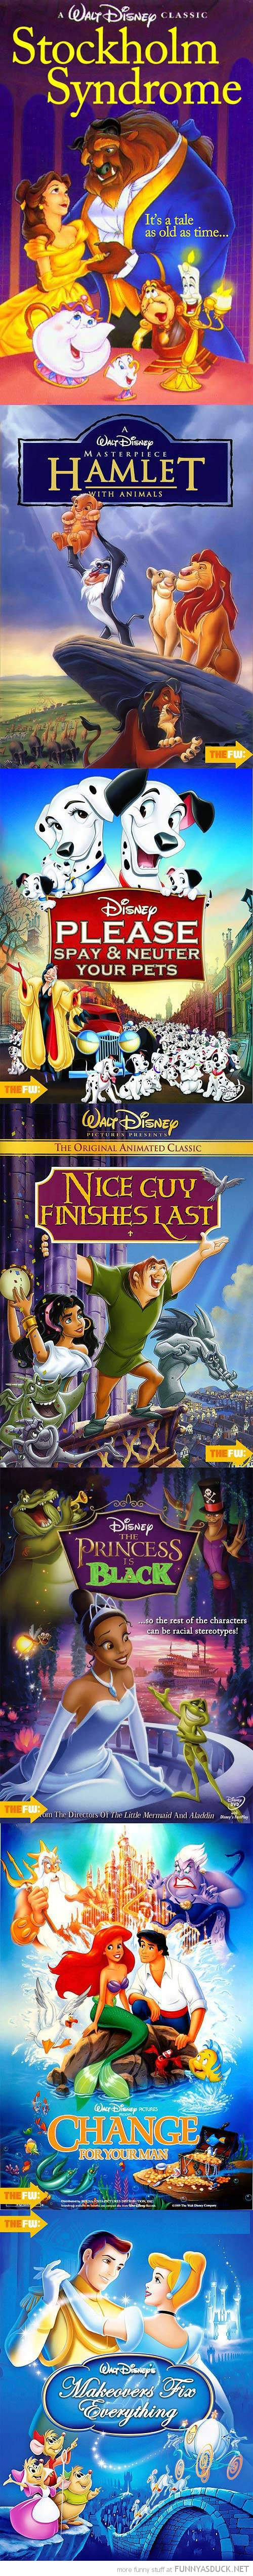 If Disney Movie Titles Were Accurate